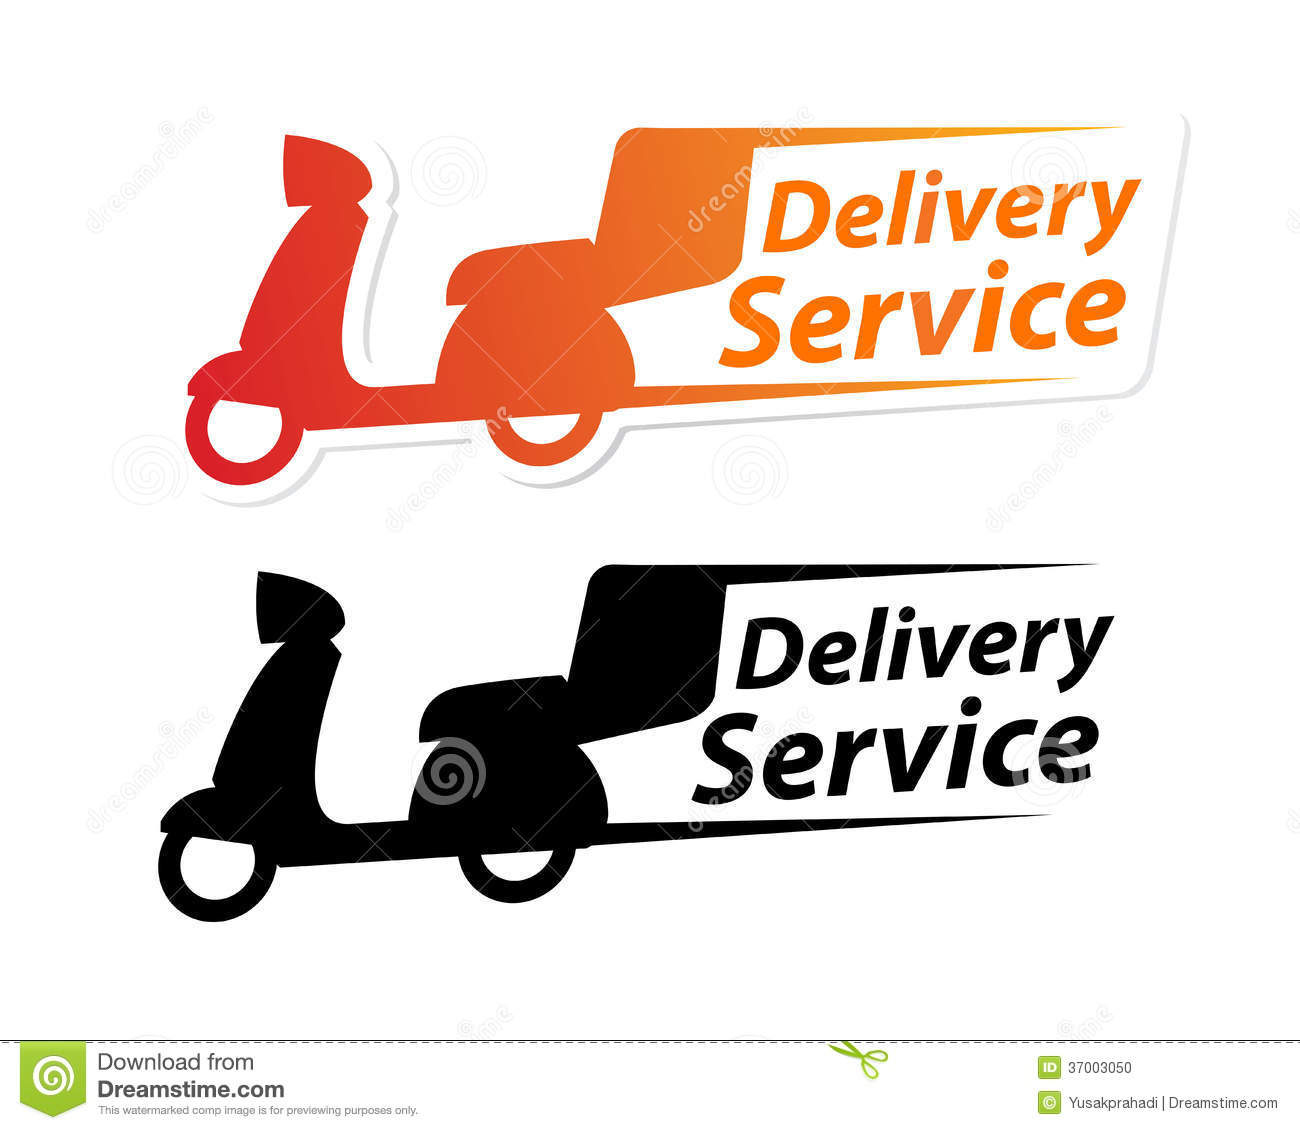 Vector illustration of delivery service sign in color and black and